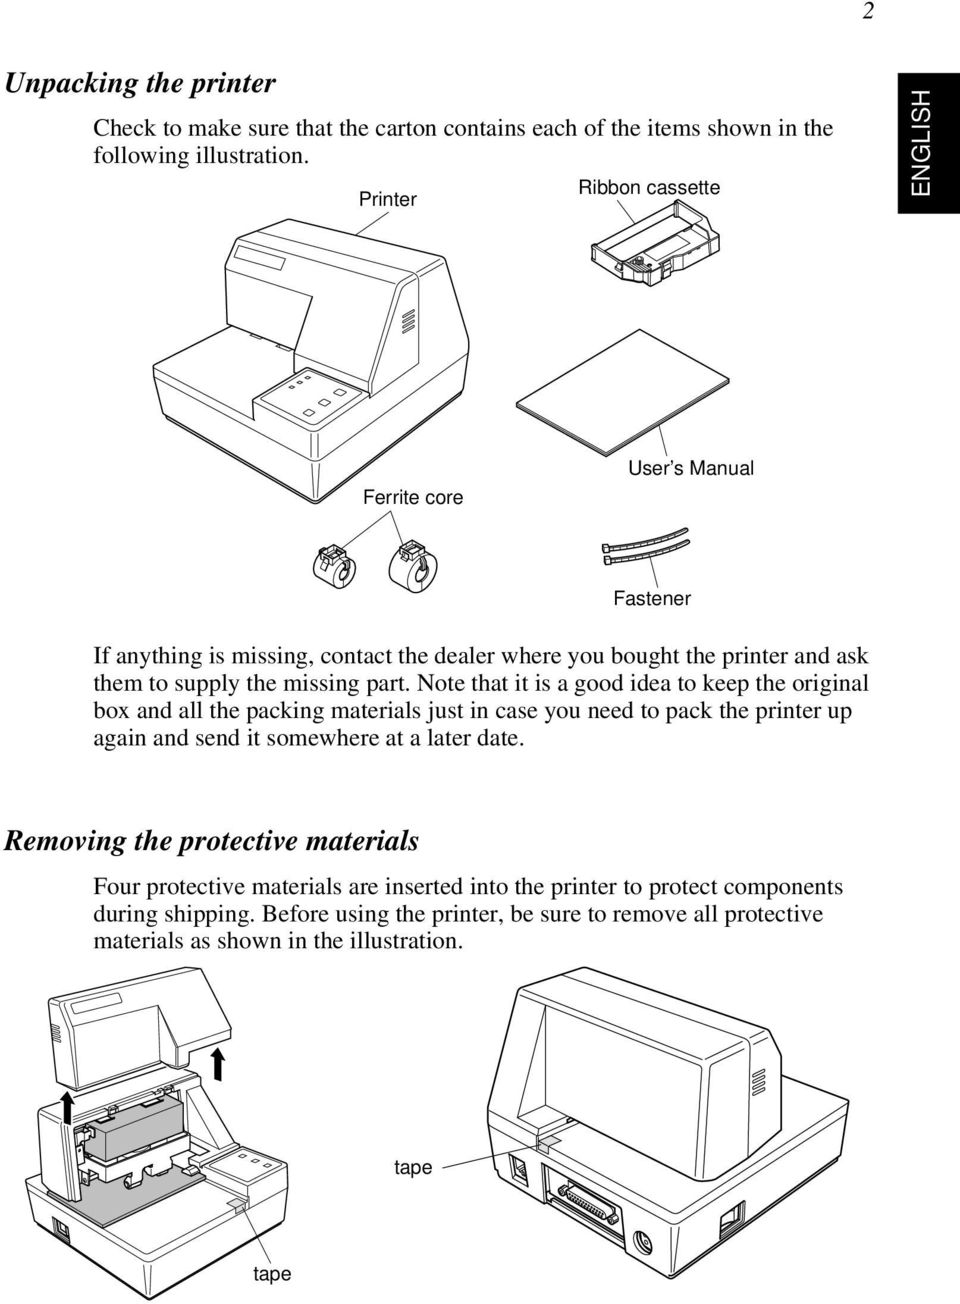 part. Note that it is a good idea to keep the original box and all the packing materials just in case you need to pack the printer up again and send it somewhere at a later date.